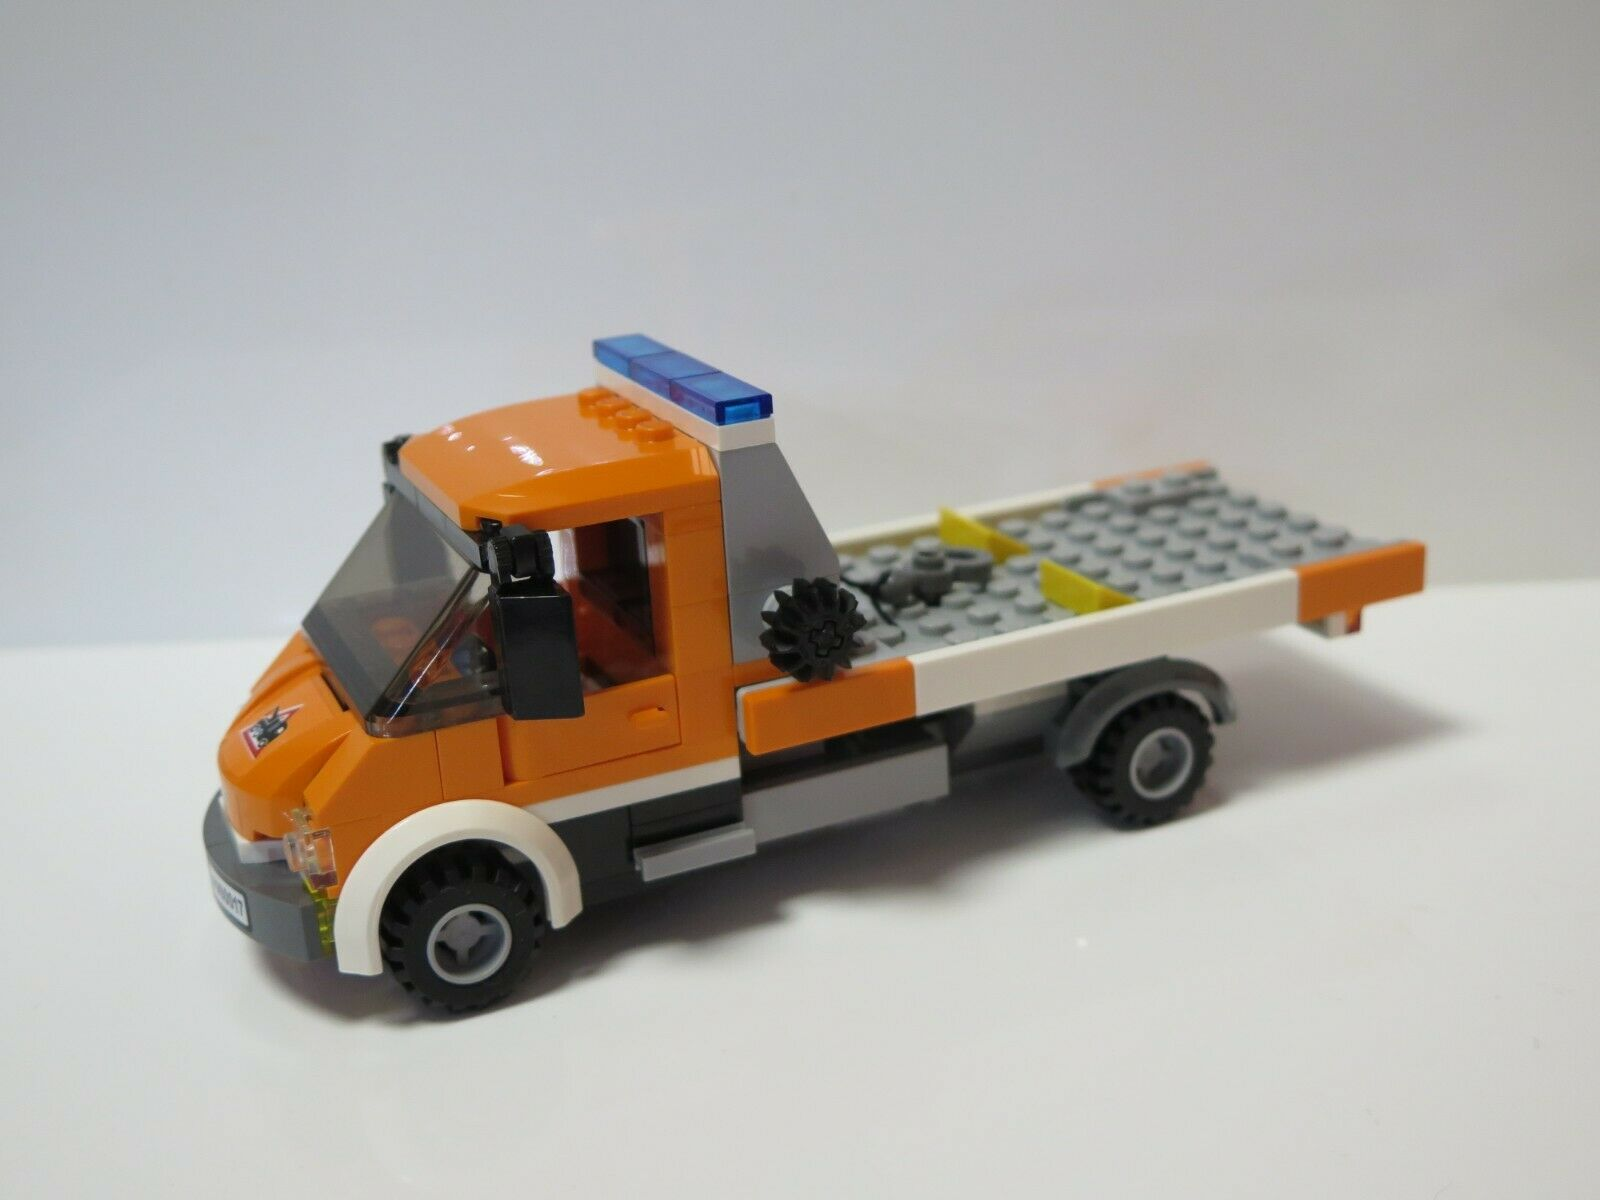 Lego City Flatbed Truck 60017 Only Flatbed Truck Used